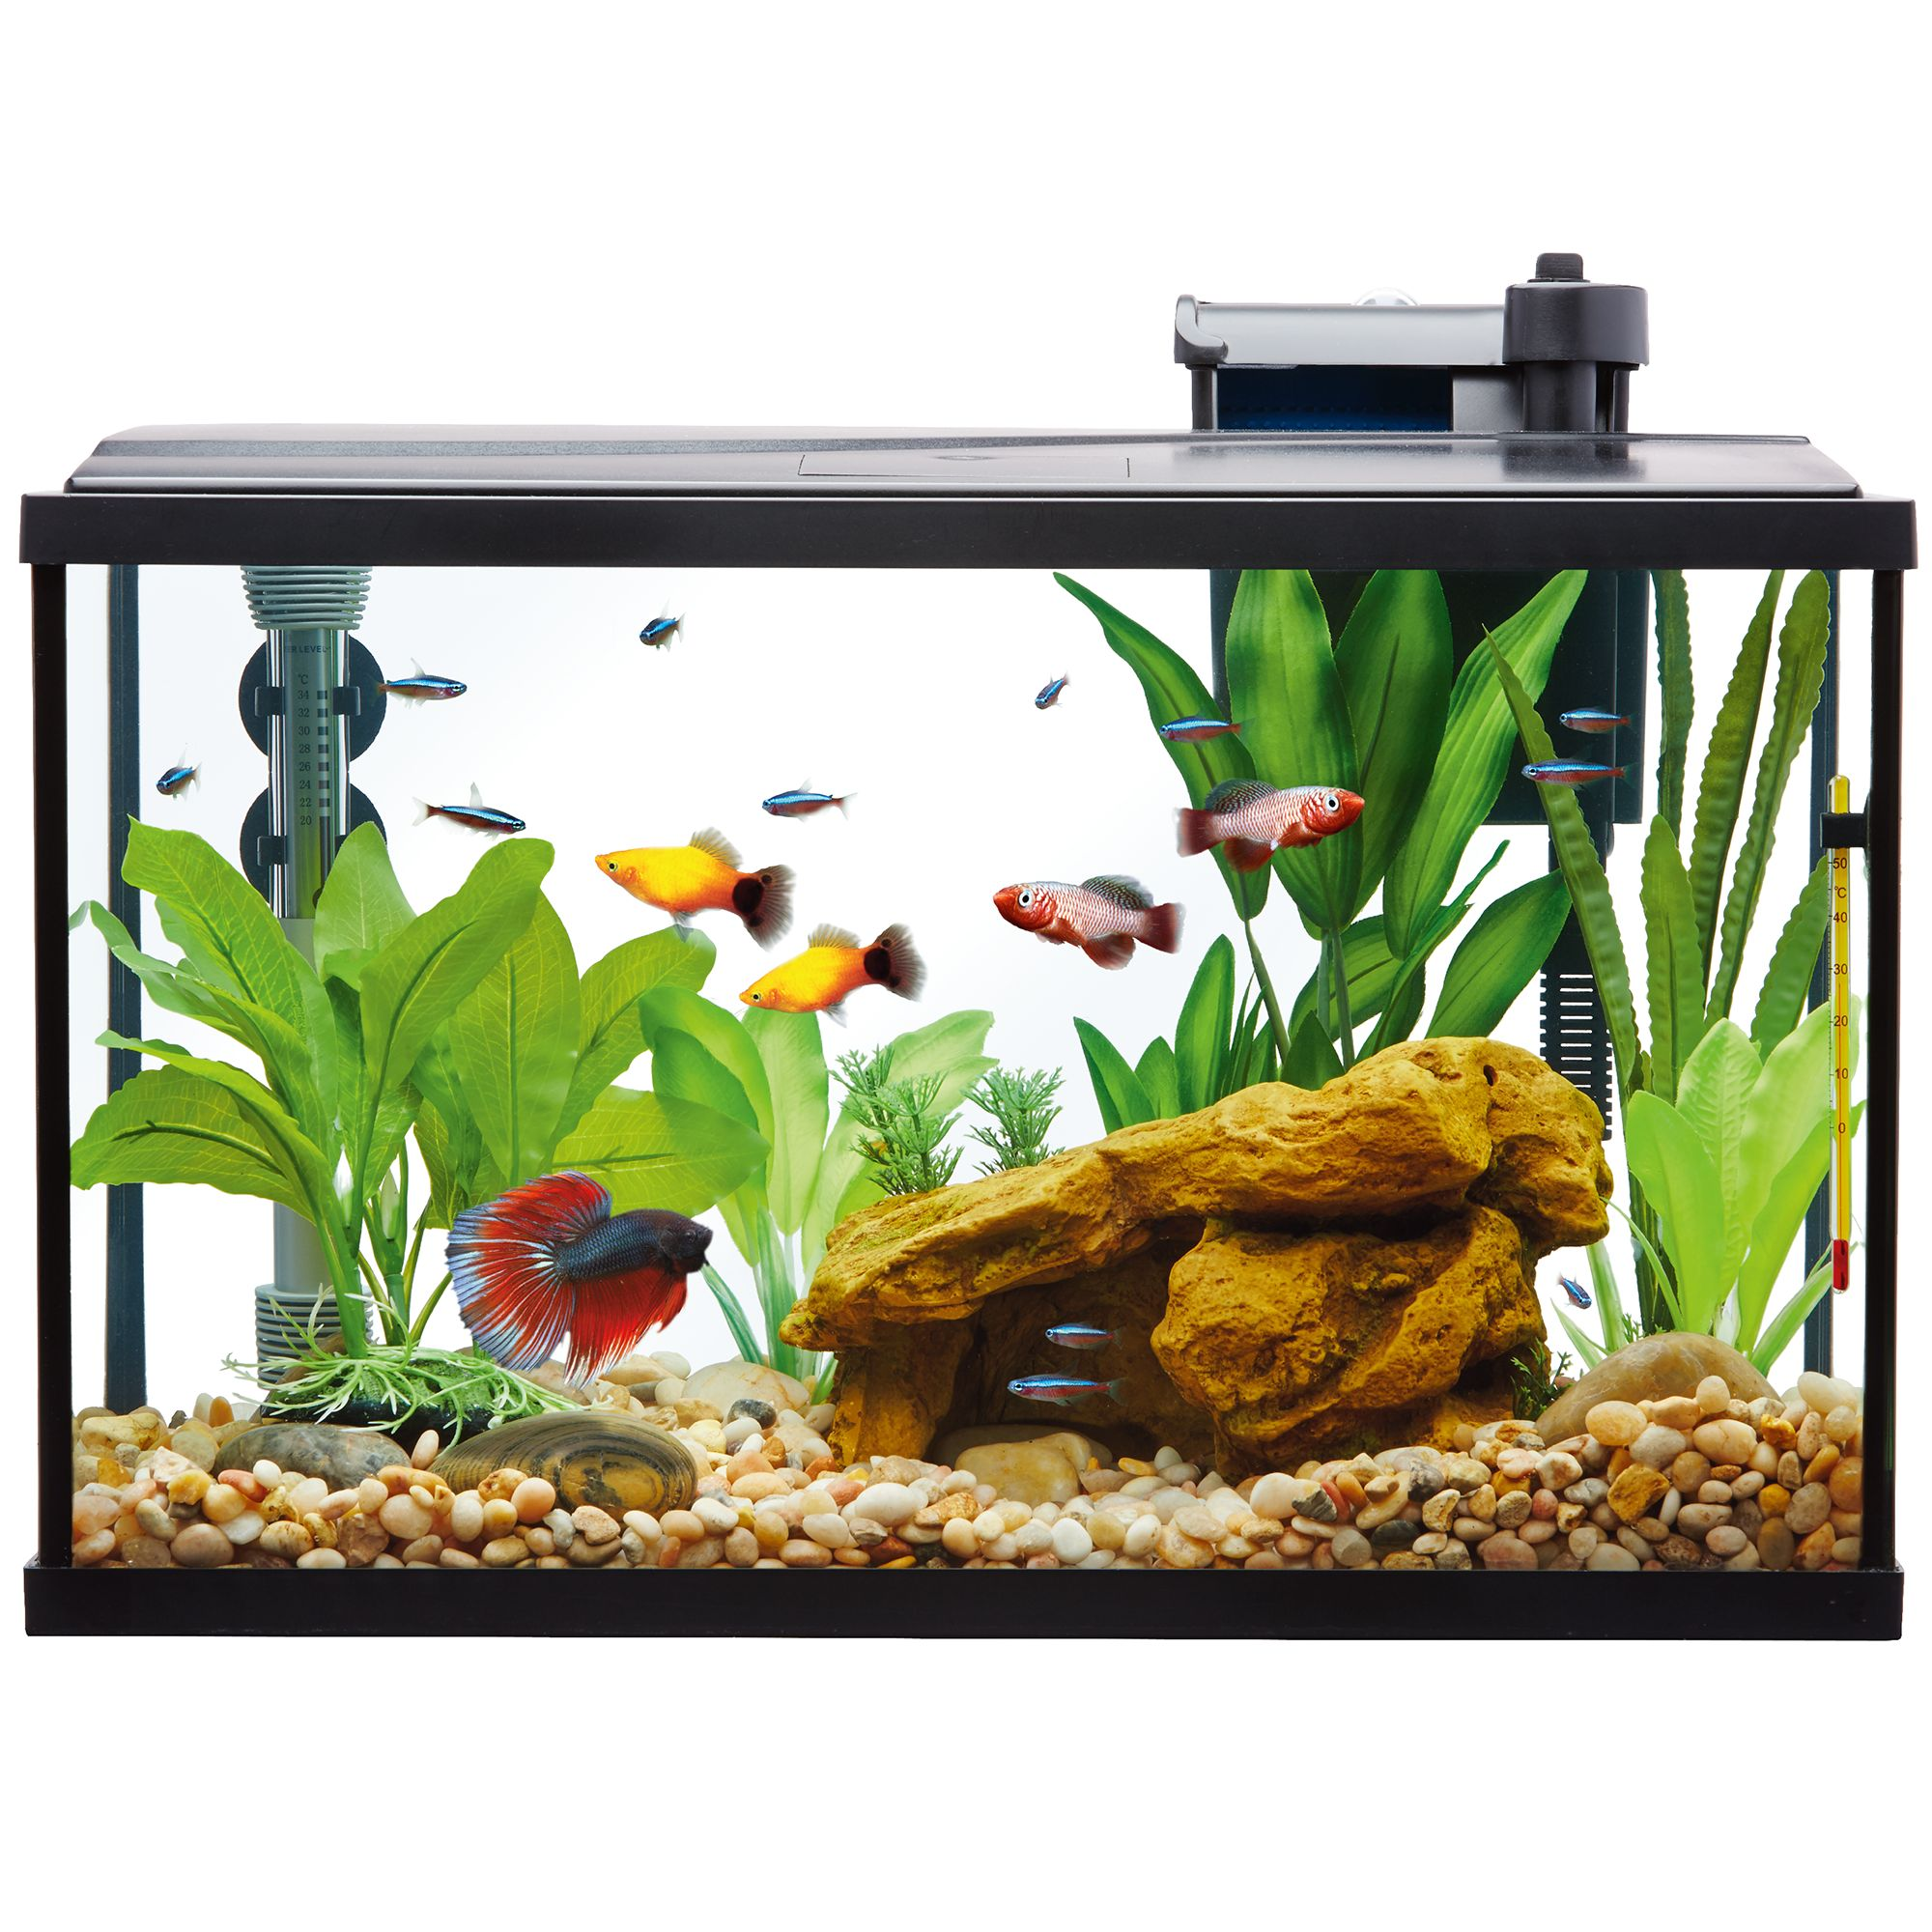 Top Fin Essentials Aquarium Starter Kit